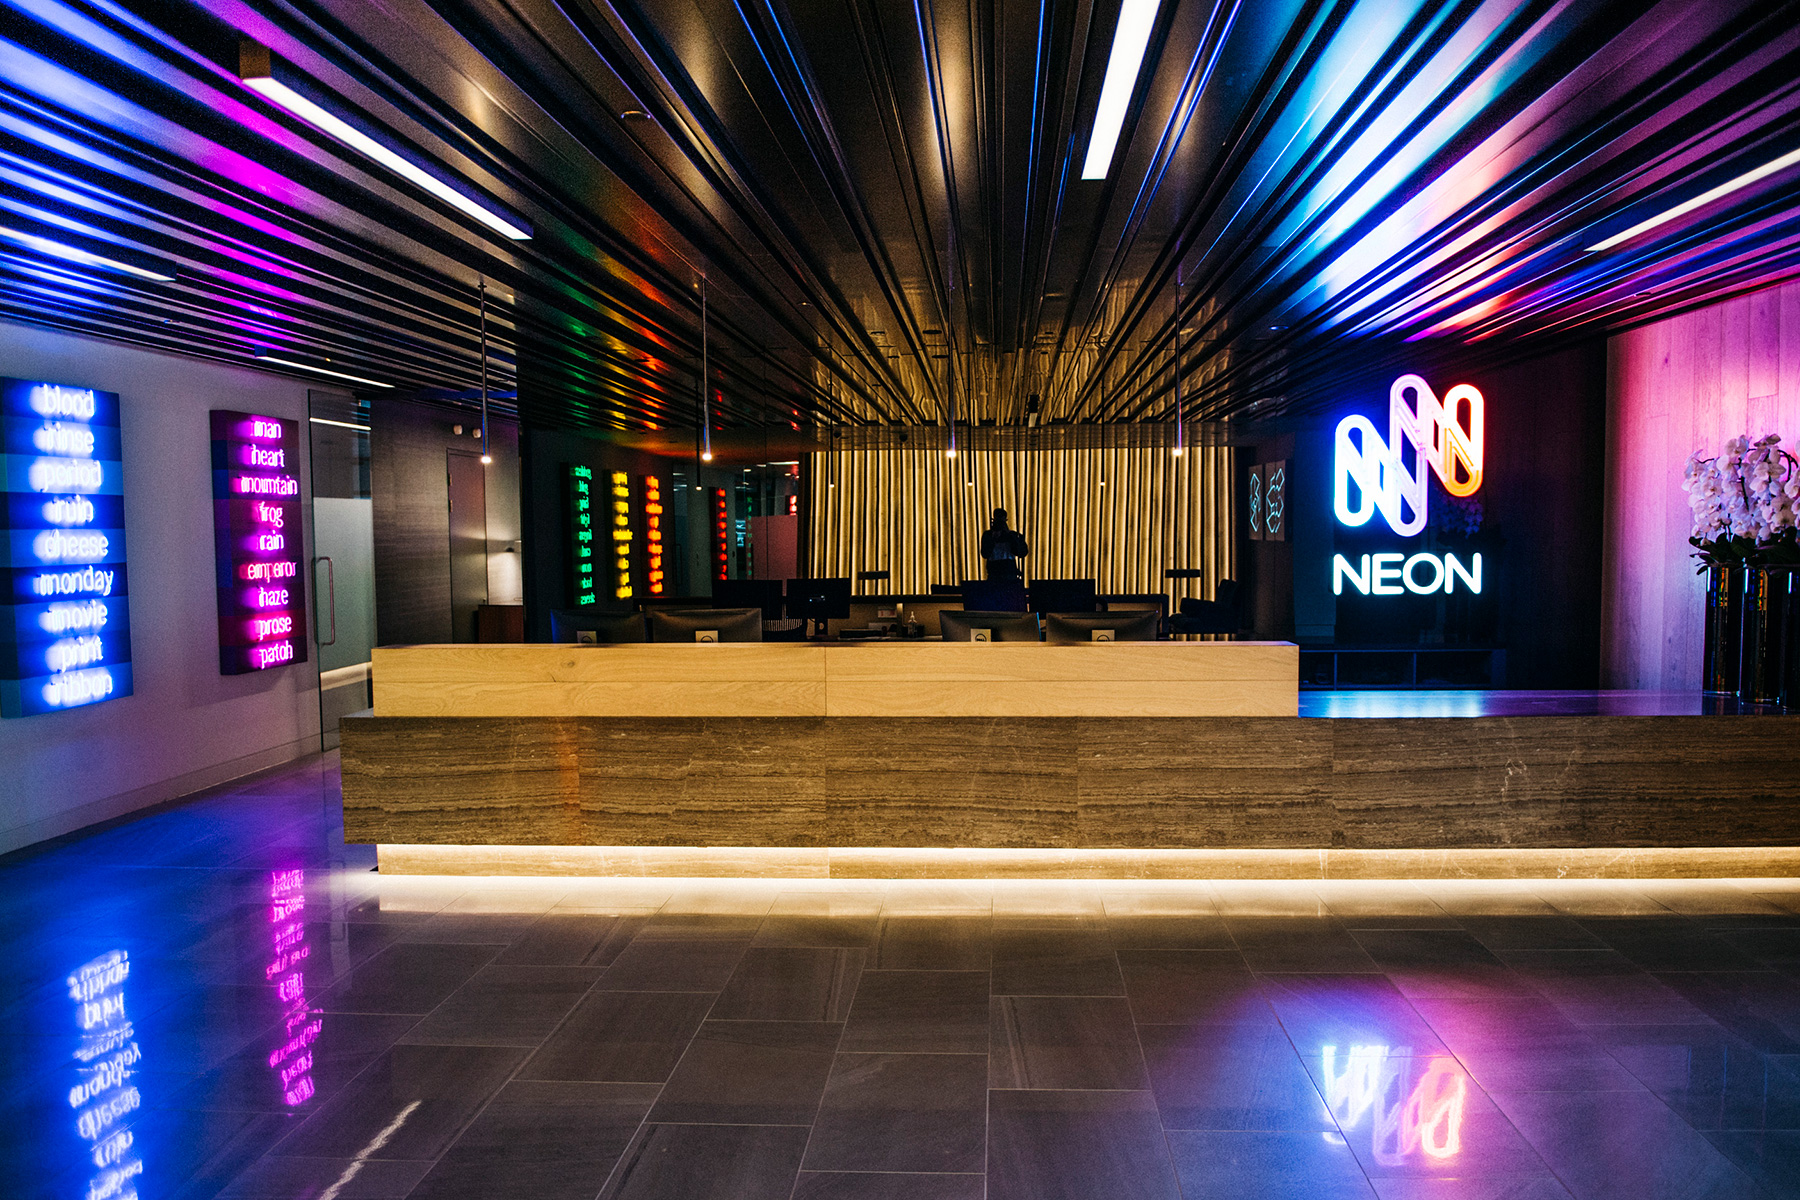 The combination of Neon branding and complimentary bright Neon artwork creates a bright and inspirational workplace.